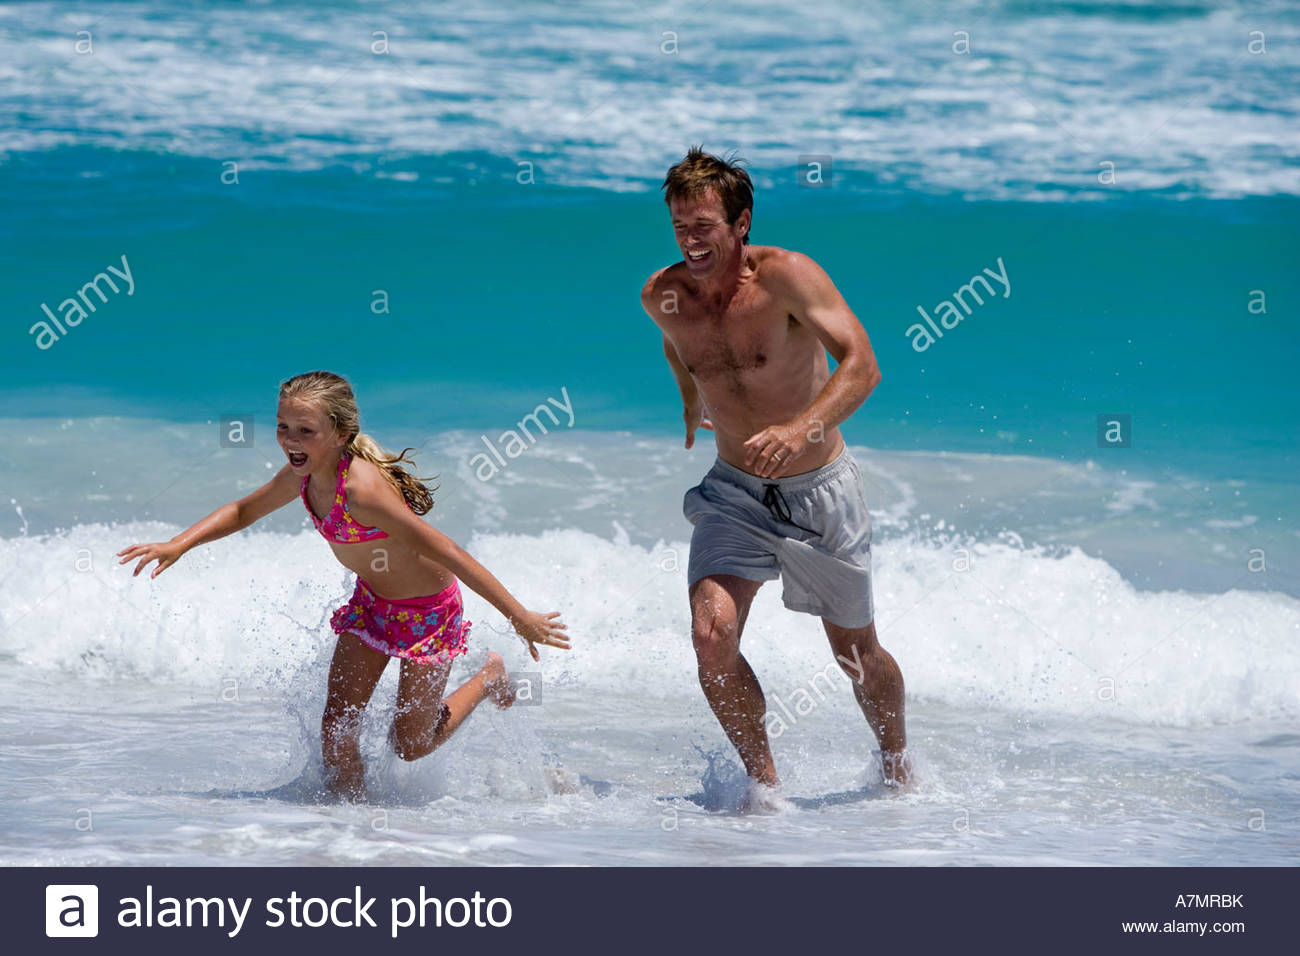 Woman running away from man